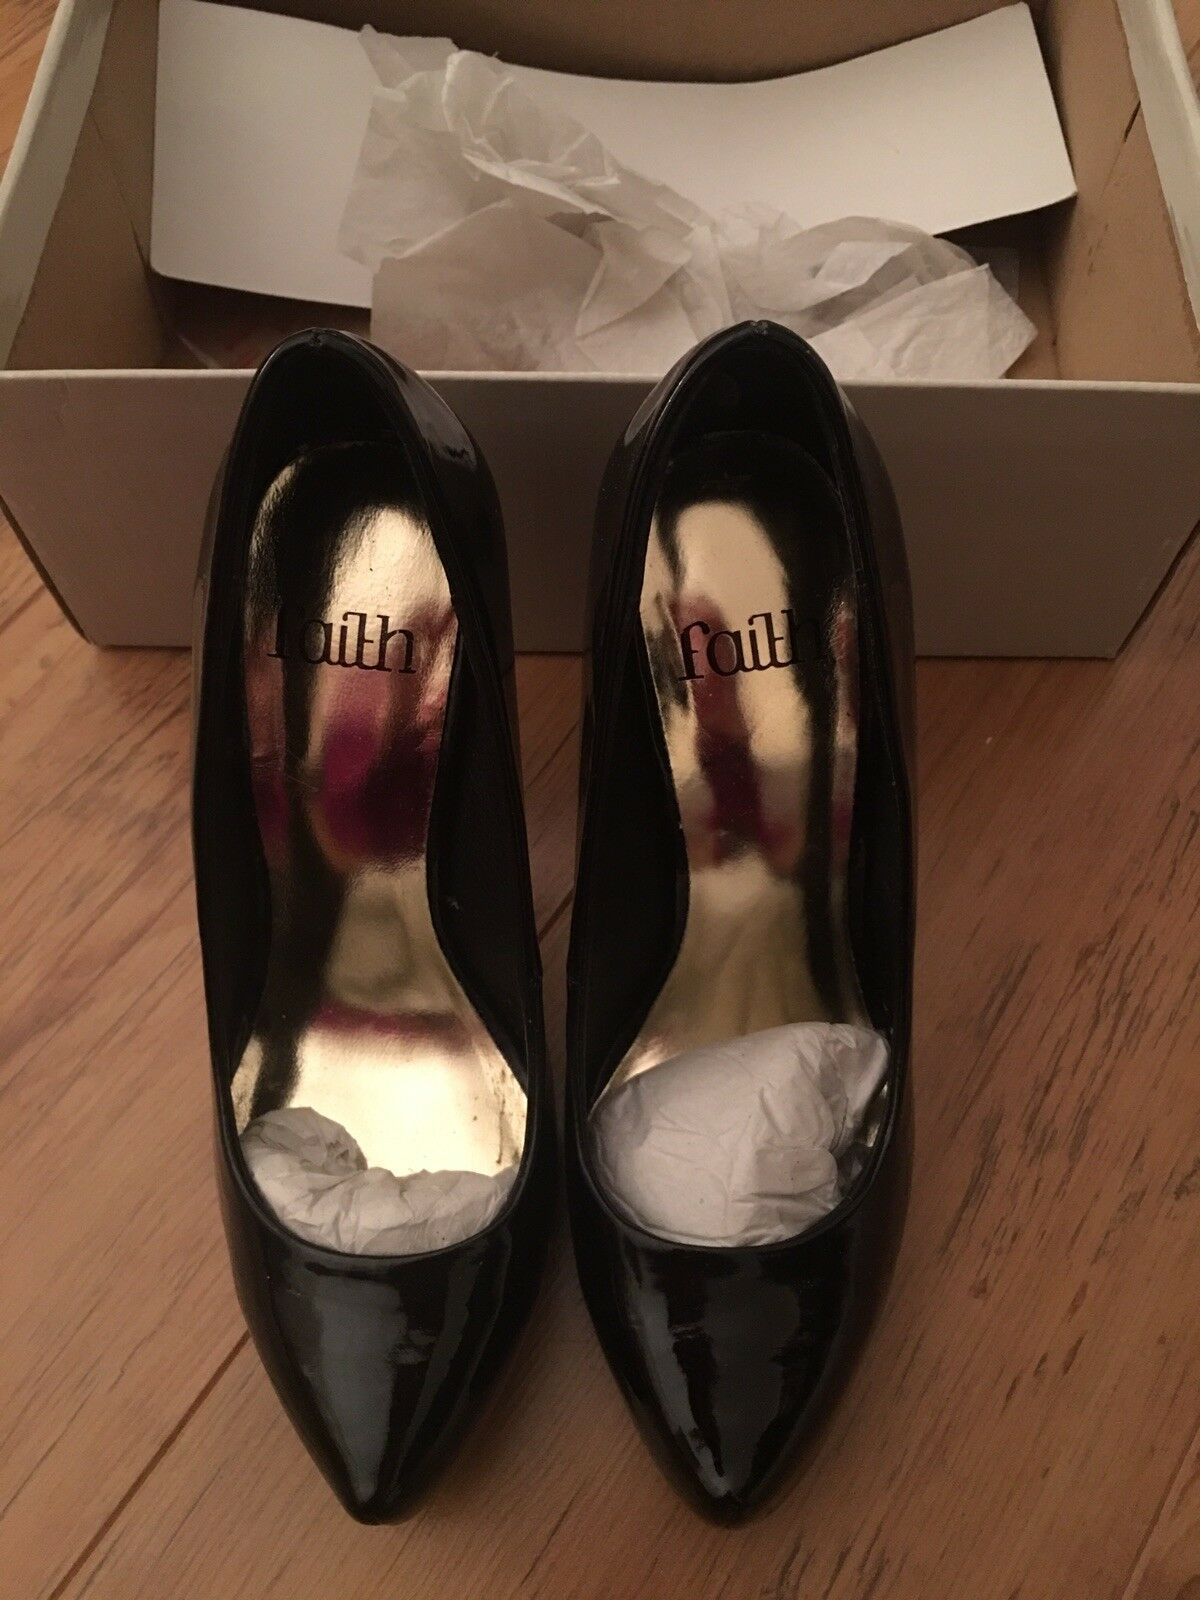 Faith 'Cylea' Black Patent Platform High Heeled Court shoes size 3 New with box